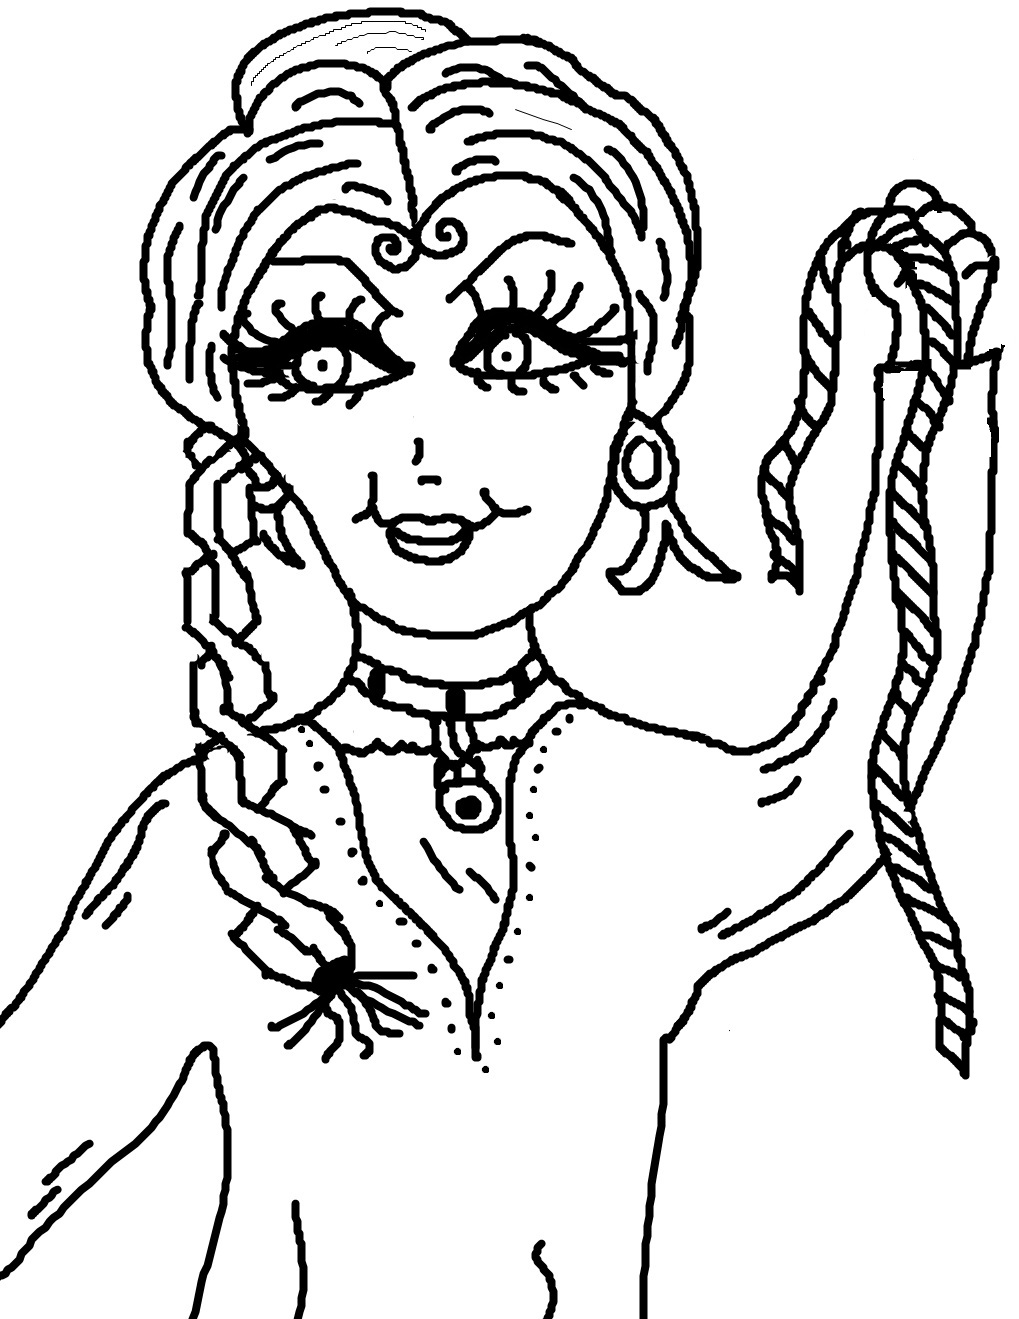 Samson and Delilah Coloring Pages